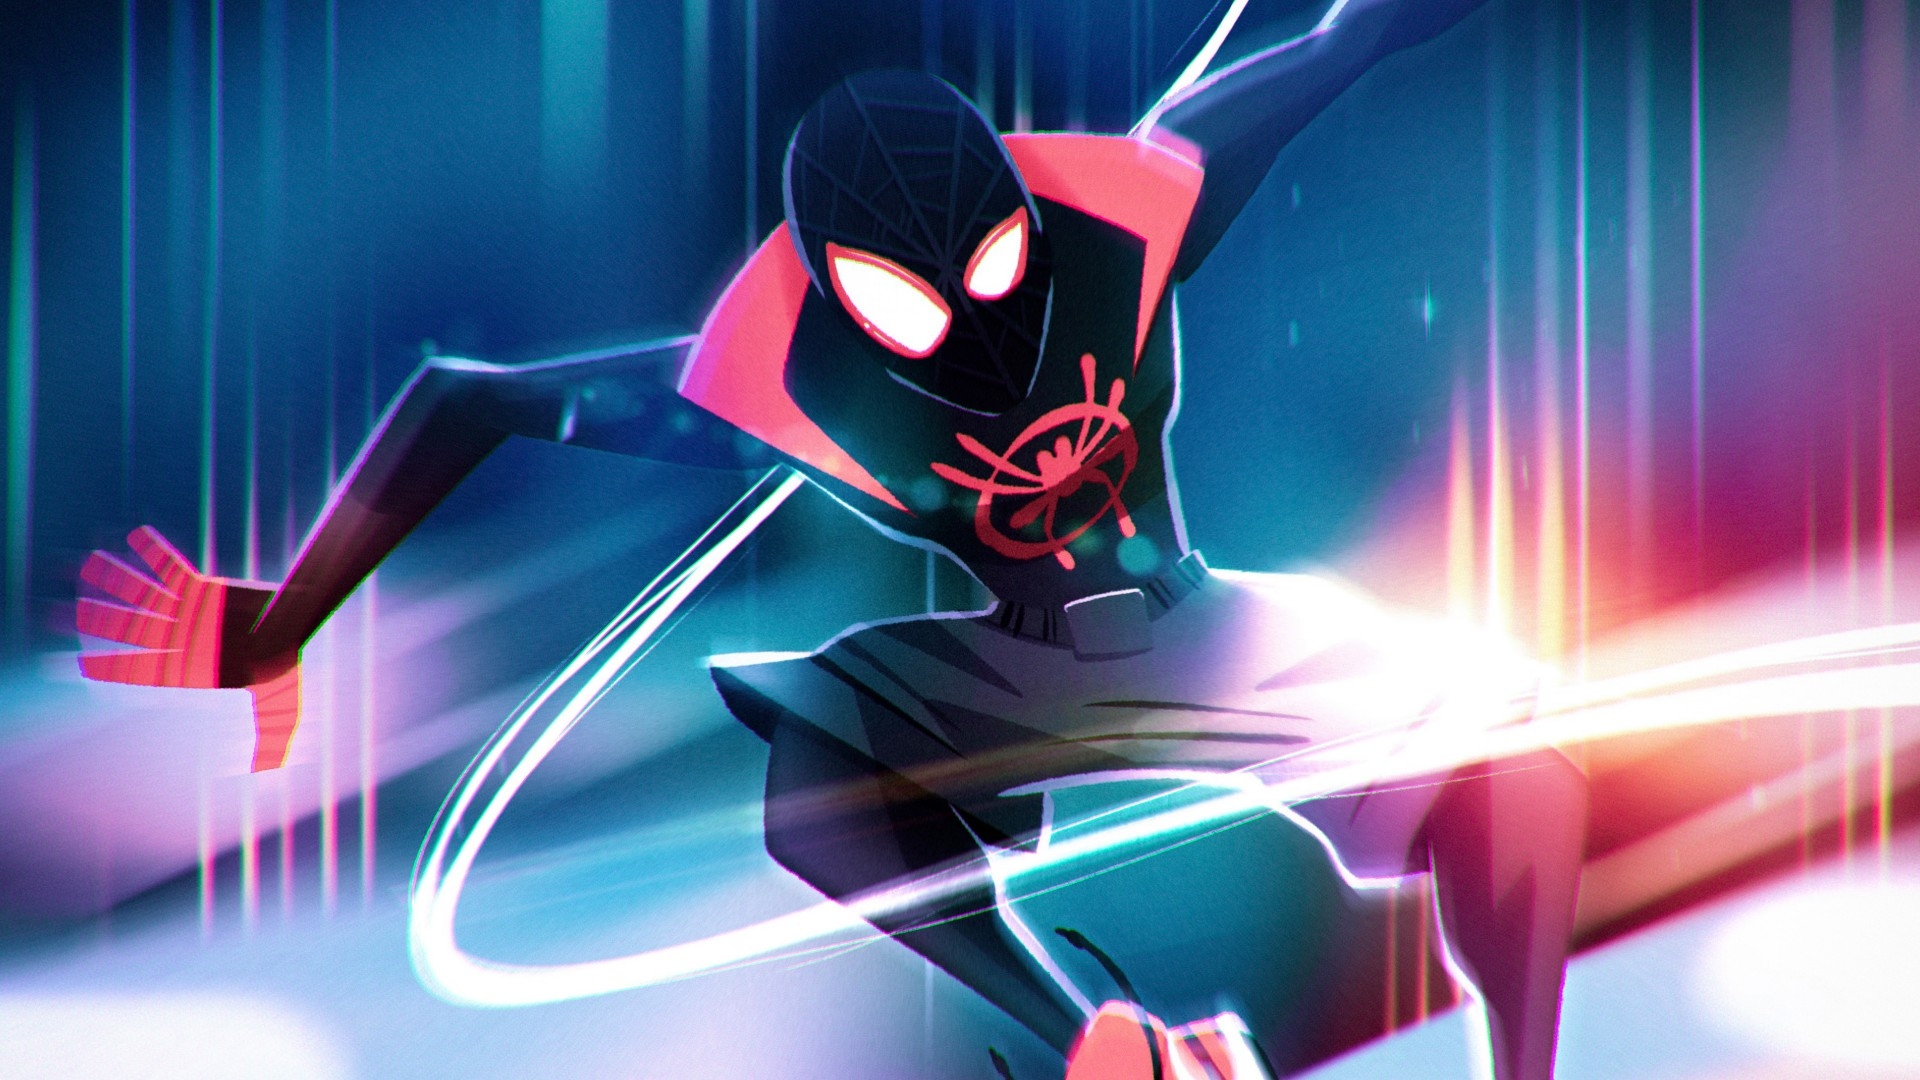 Spiderman 3d Wallpaper For Iphone Spider Man Into The Spider Verse Artwork Wallpapers Hd